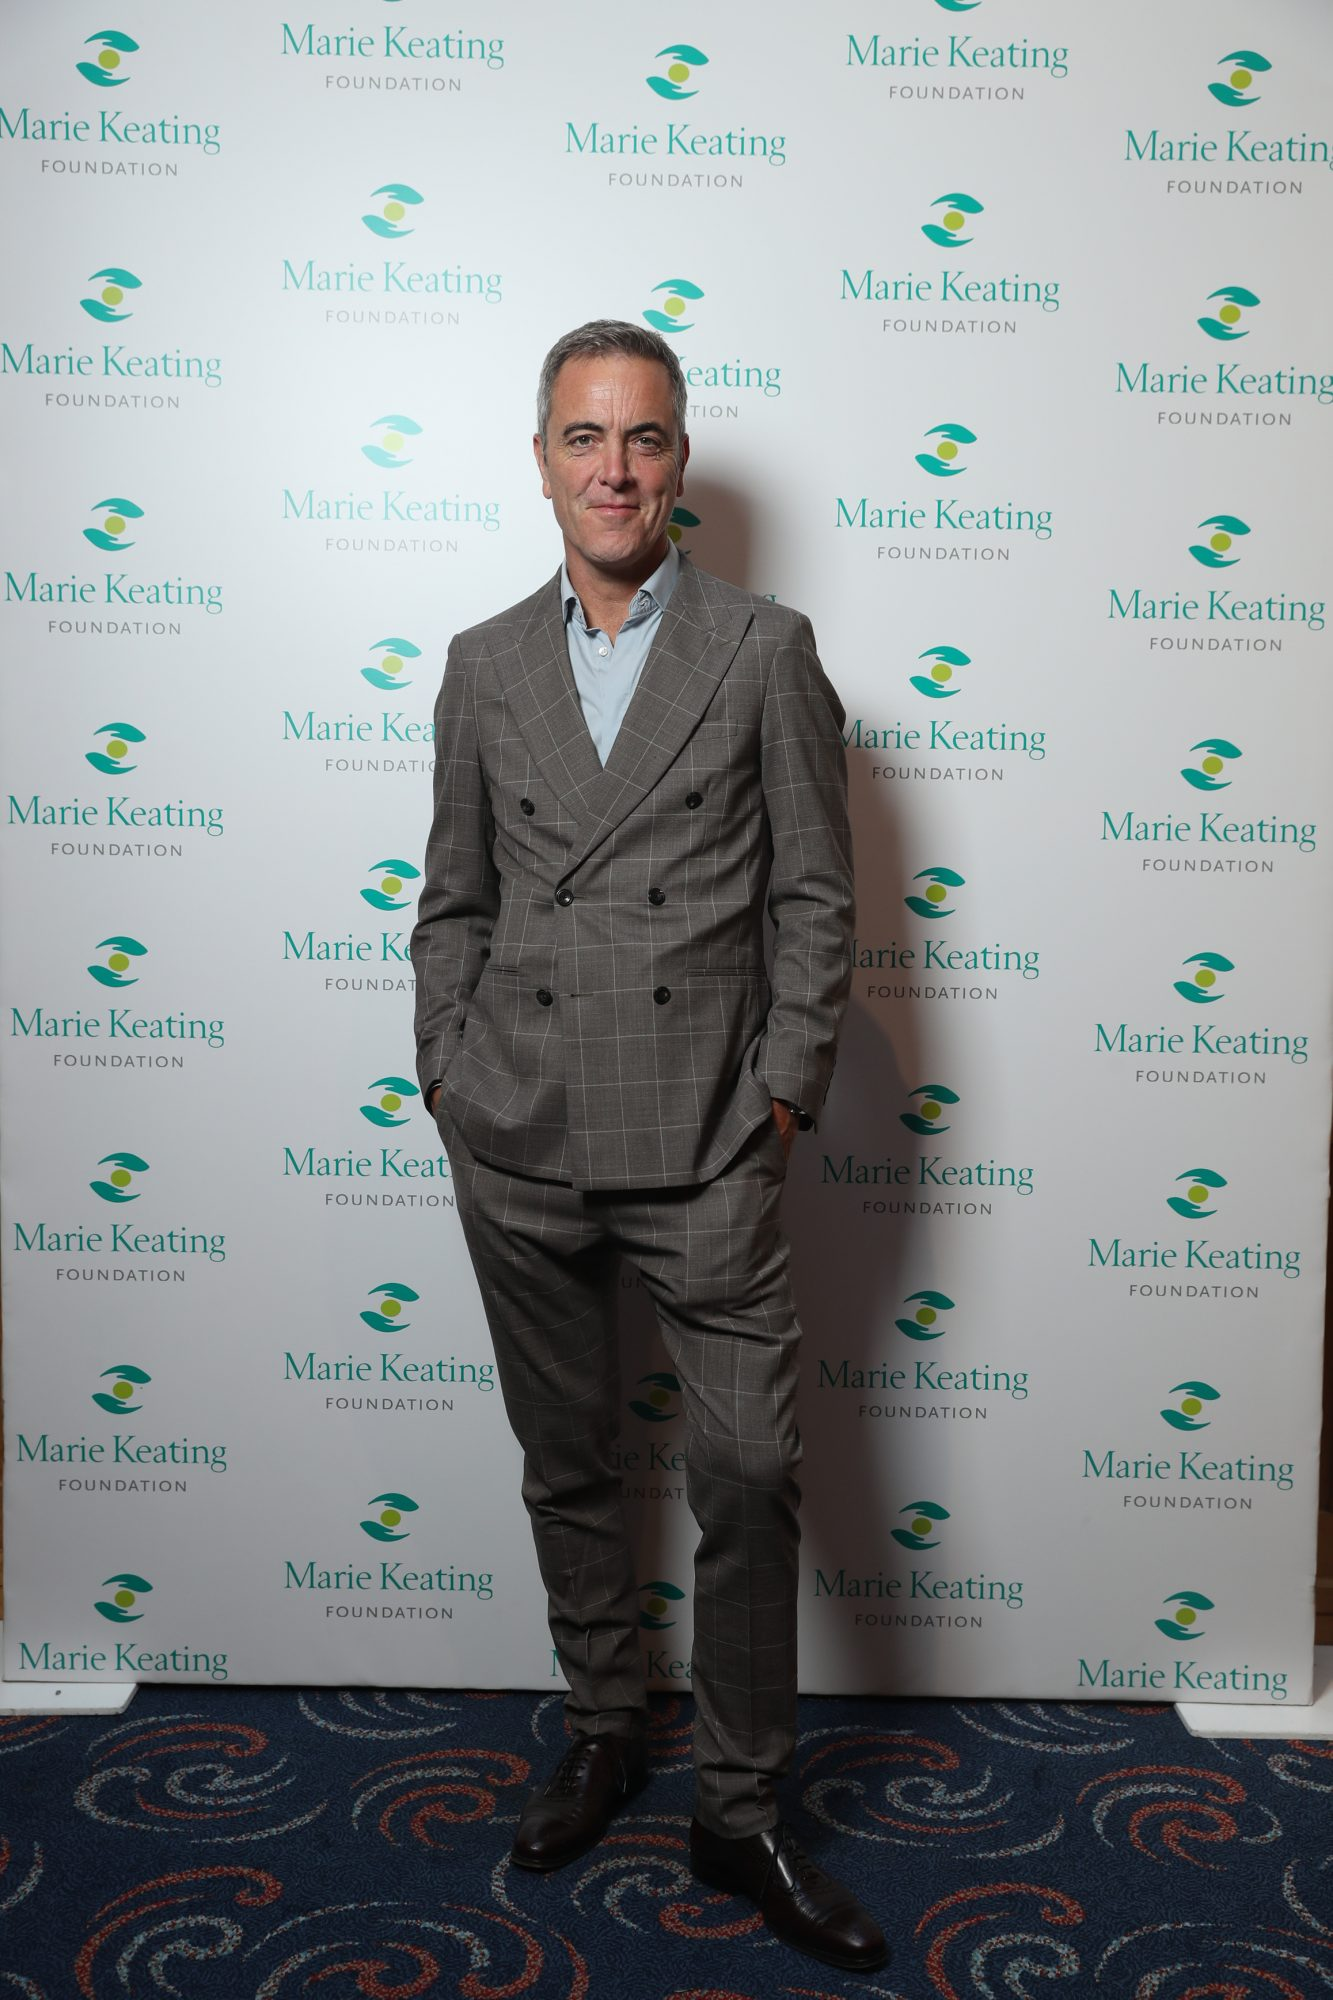 Repro Free Thursday 1st August 2019; pictured was James Nesbitt at the Marie Keating Foundation Celebrity Golf Classic kindly supported by Skechers, Its4women, Marks & Spencer and Devine's Worldwide Chauffeurs, which took place on the Palmer Course at the K Club.  Now in its 21st year, the event saw a host of celebrities including Mike Tindall, James Nesbitt, Craig McGinlay, Stephen Hendry, Barry Murphy, Brian Ormond and Fiona O'Carroll, descend on the prestigious Kildare course to enjoy a fantastic day of golf followed by dinner at the K Club. The highly anticipated event raises much needed funds for the Marie Keating Foundation and this year's funds will support the Foundation's cancer survivorship services. Picture Jason Clarke.  For further information, please contact Jennifer Cimerman, Communications Manager, Marie Keating Foundation on 087 6014602.